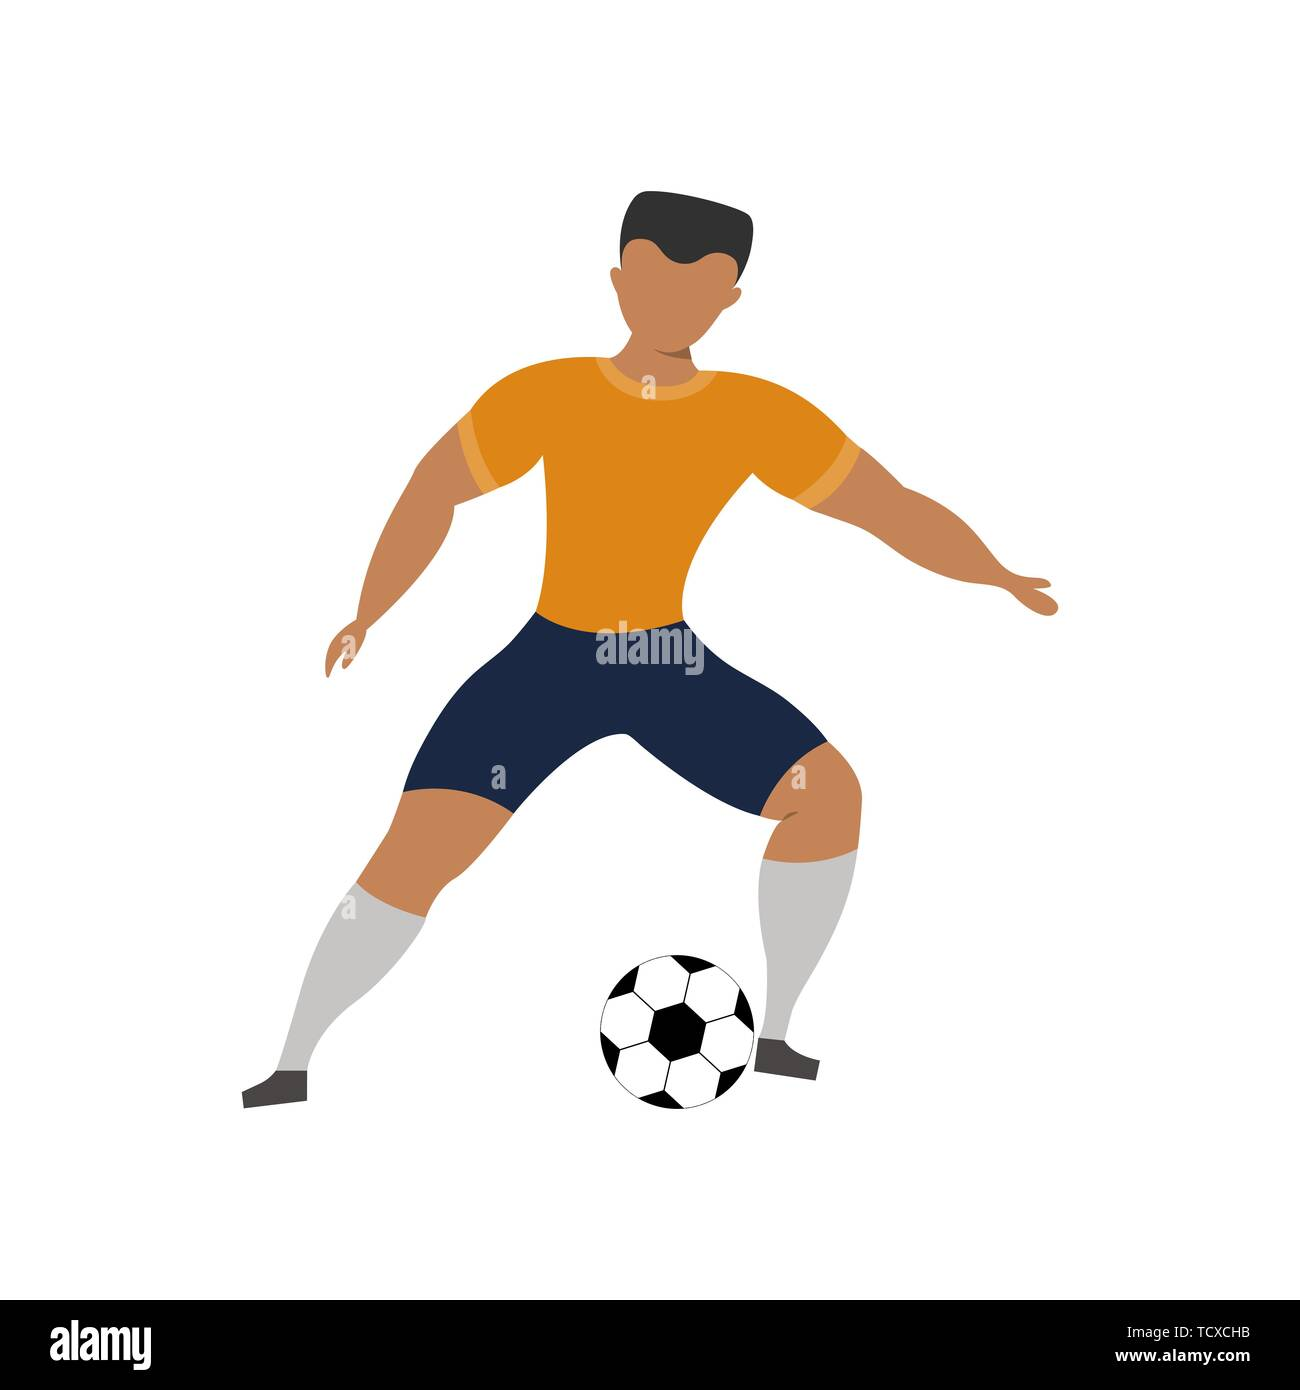 Football player on a white background. Olympic Sport Concept. Vector cartoon illustration. - Stock Vector